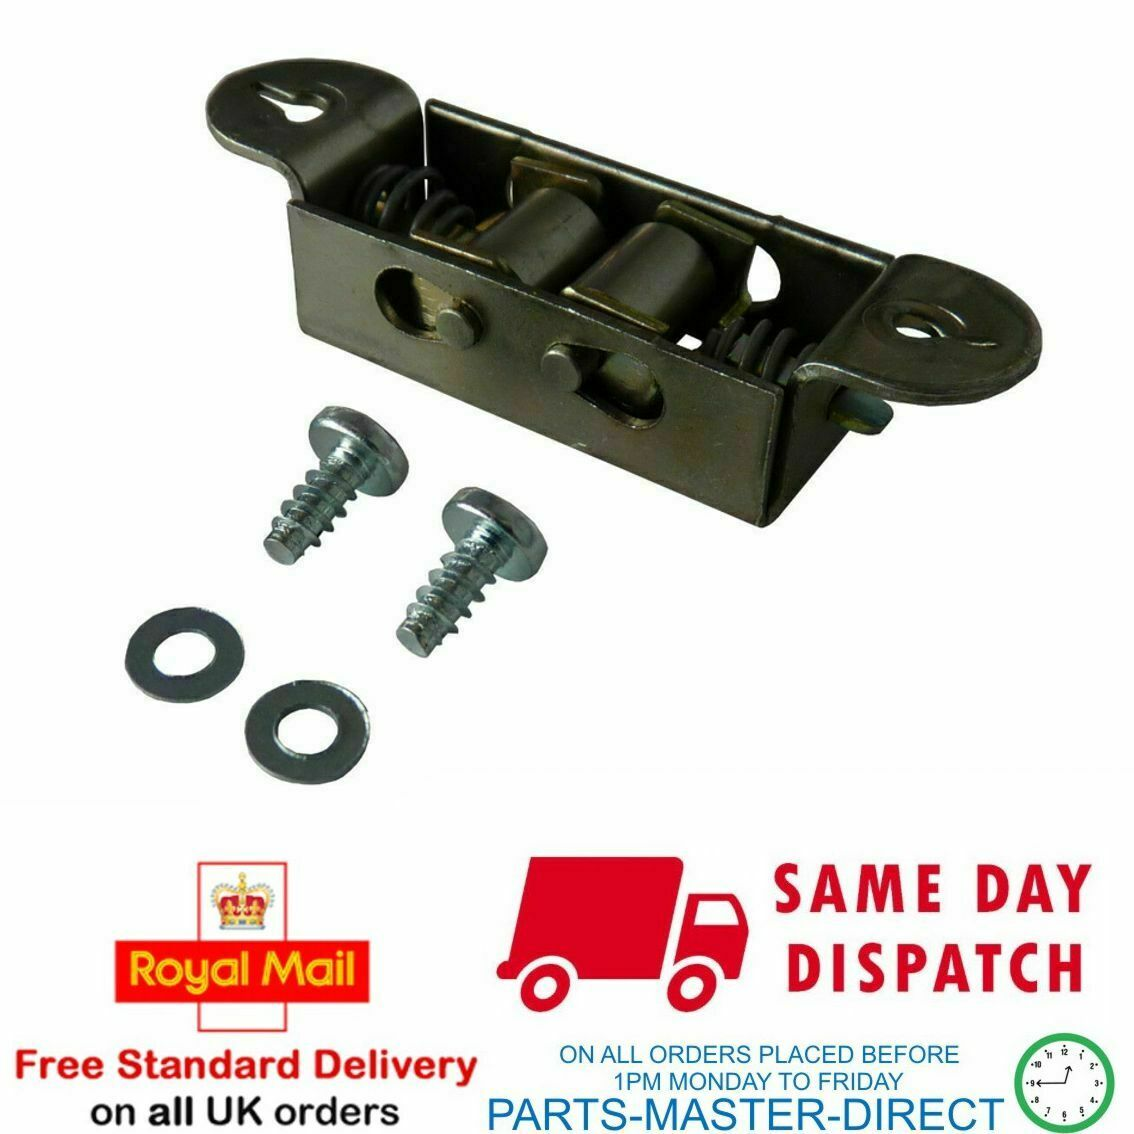 kd6c35w T High Quality Oven//Cooker Roller Door Catch Kit for INDESIT kd6c35w